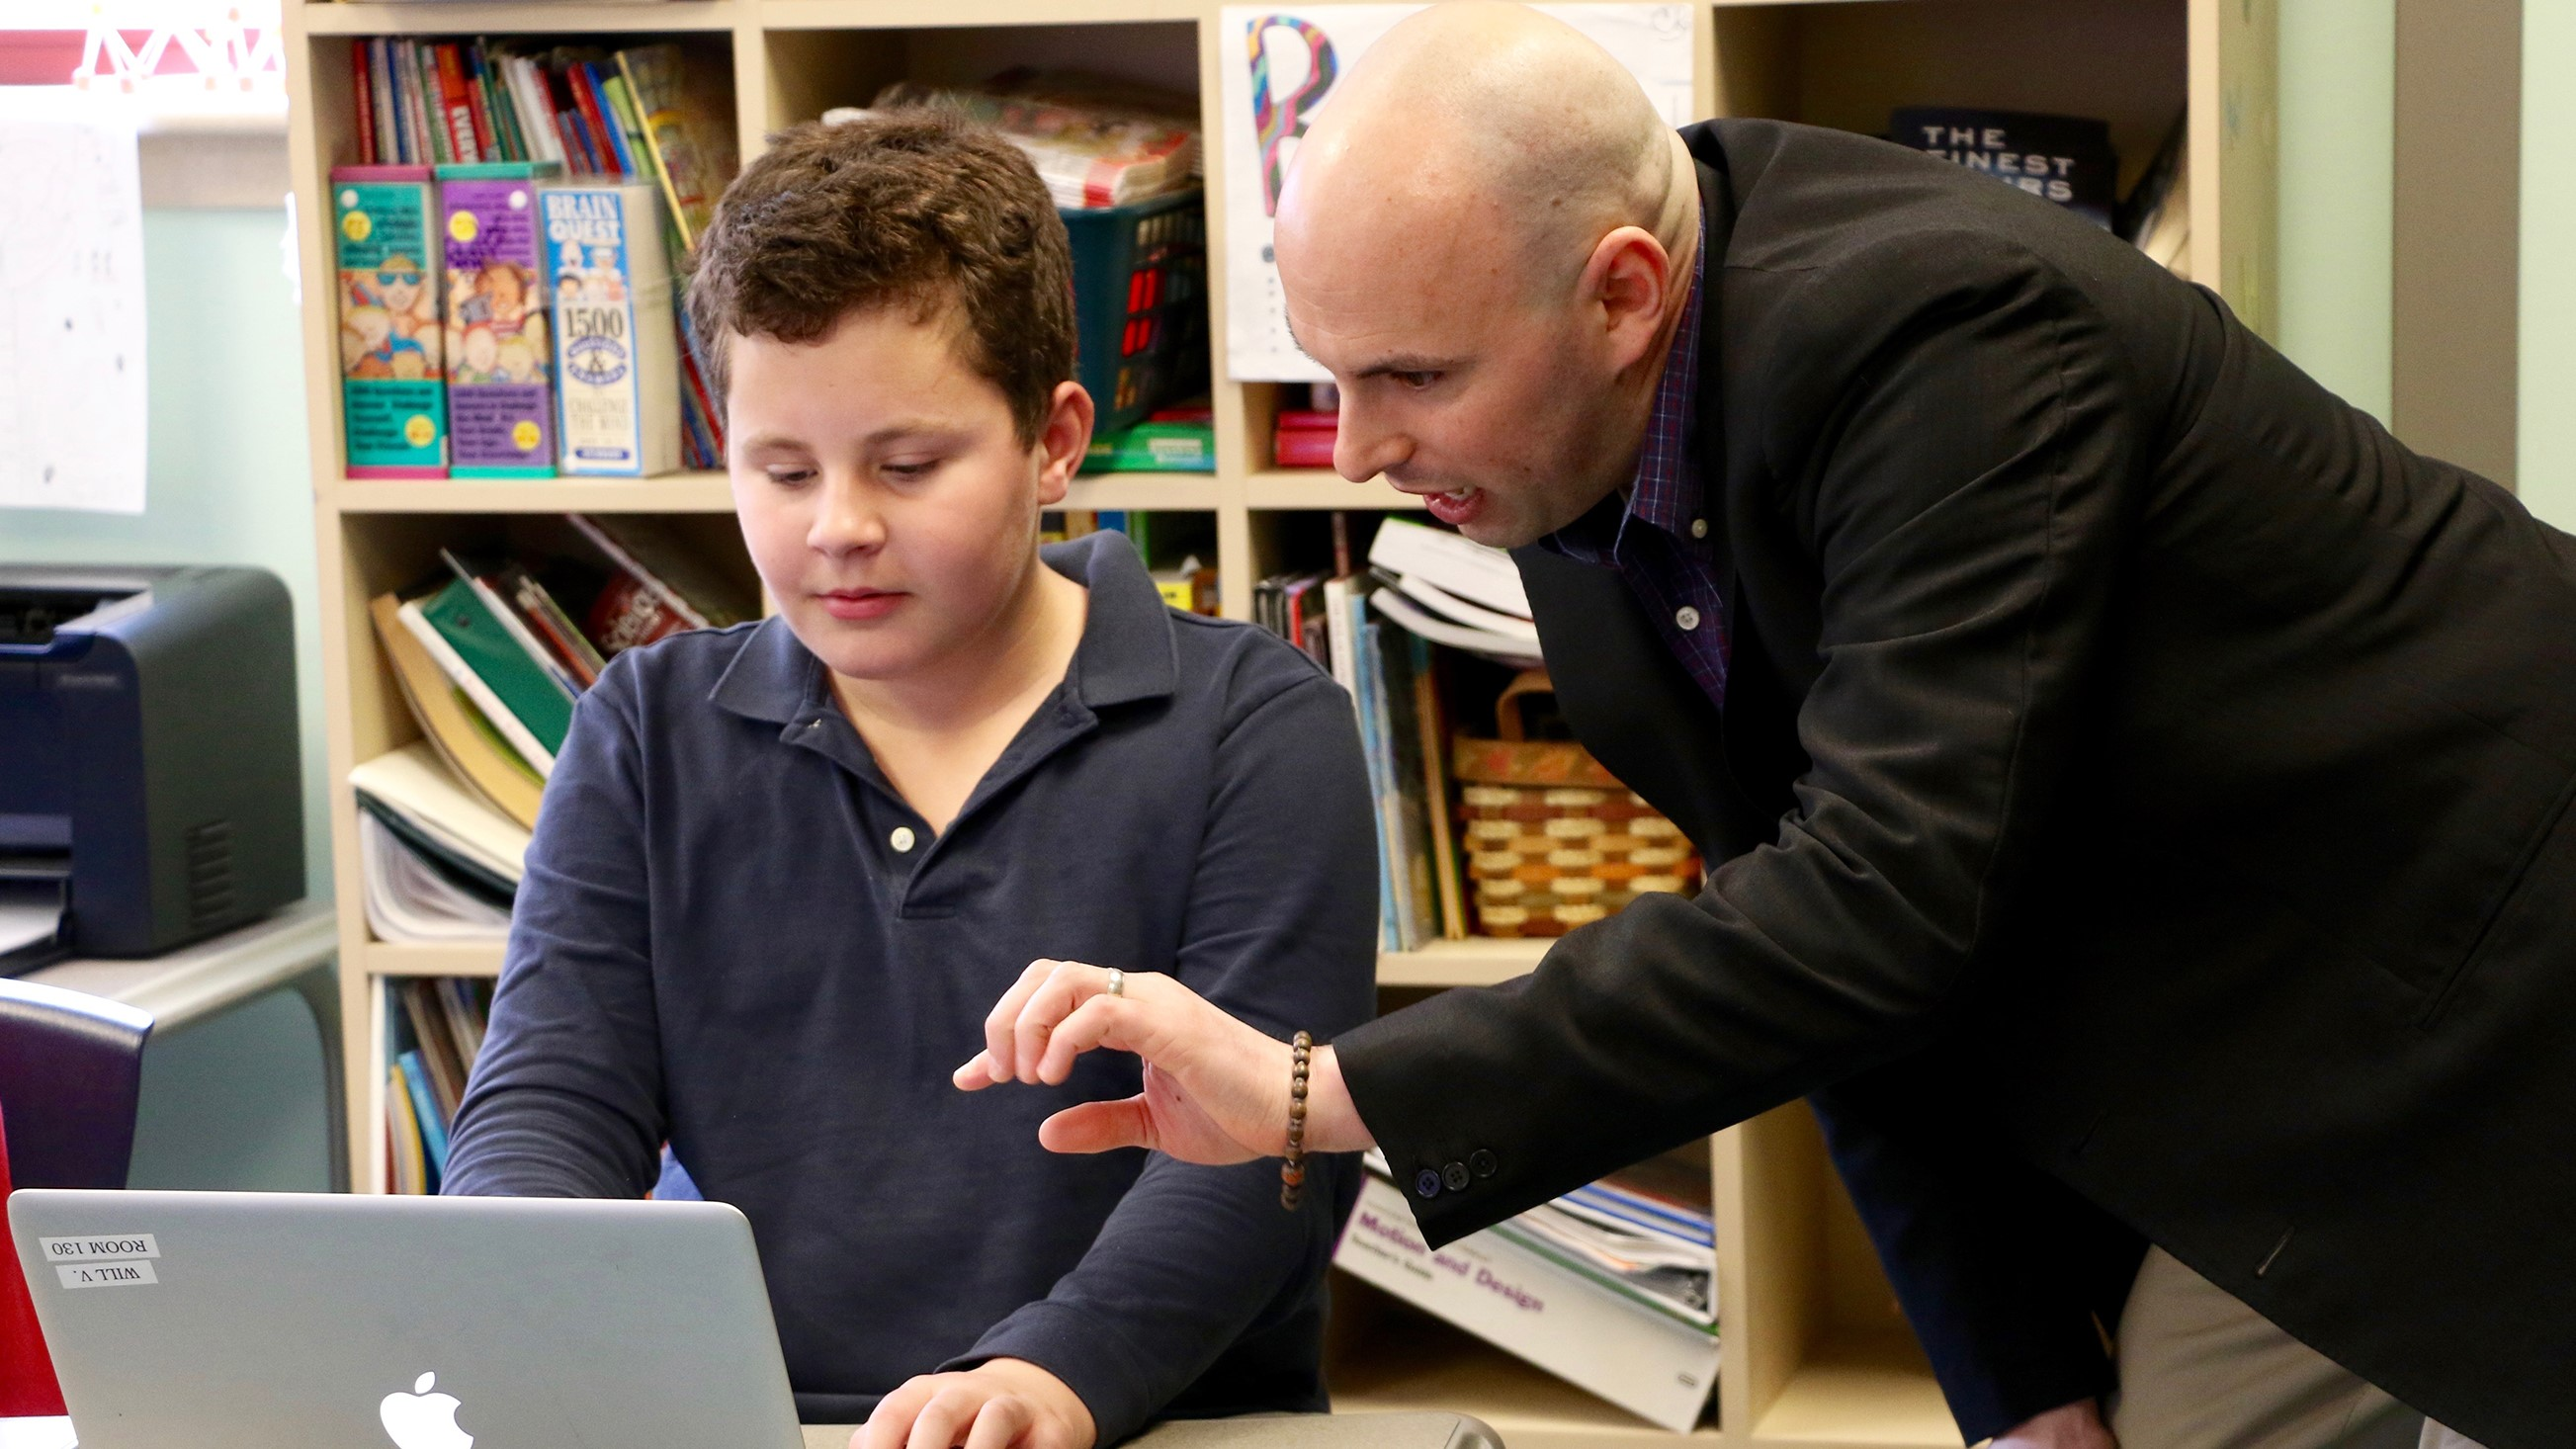 A UD professor works with a child on a classroom activity using laptops on CEHD's Children's Campus.